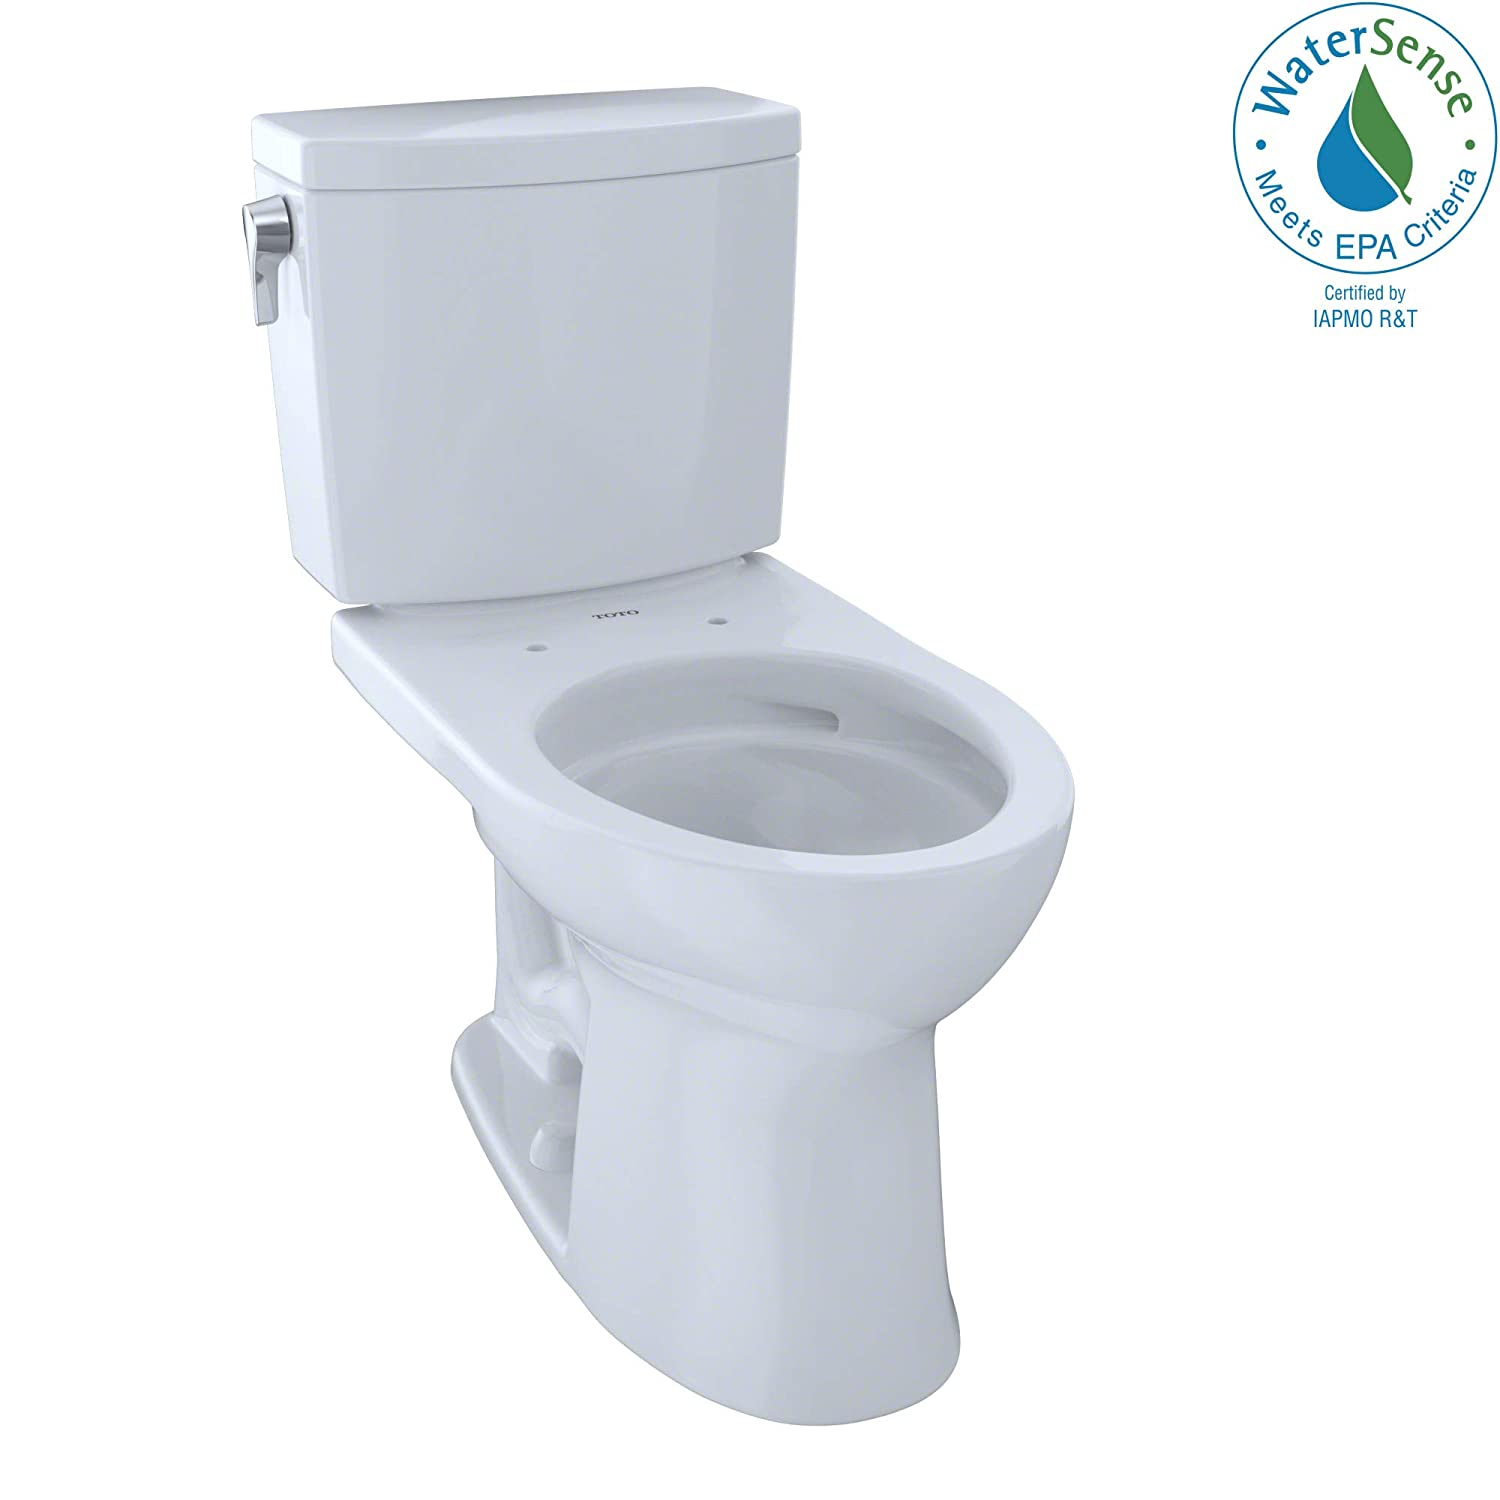 Toto Drake Ii Review Powerful Flushing Two Piece Toilets